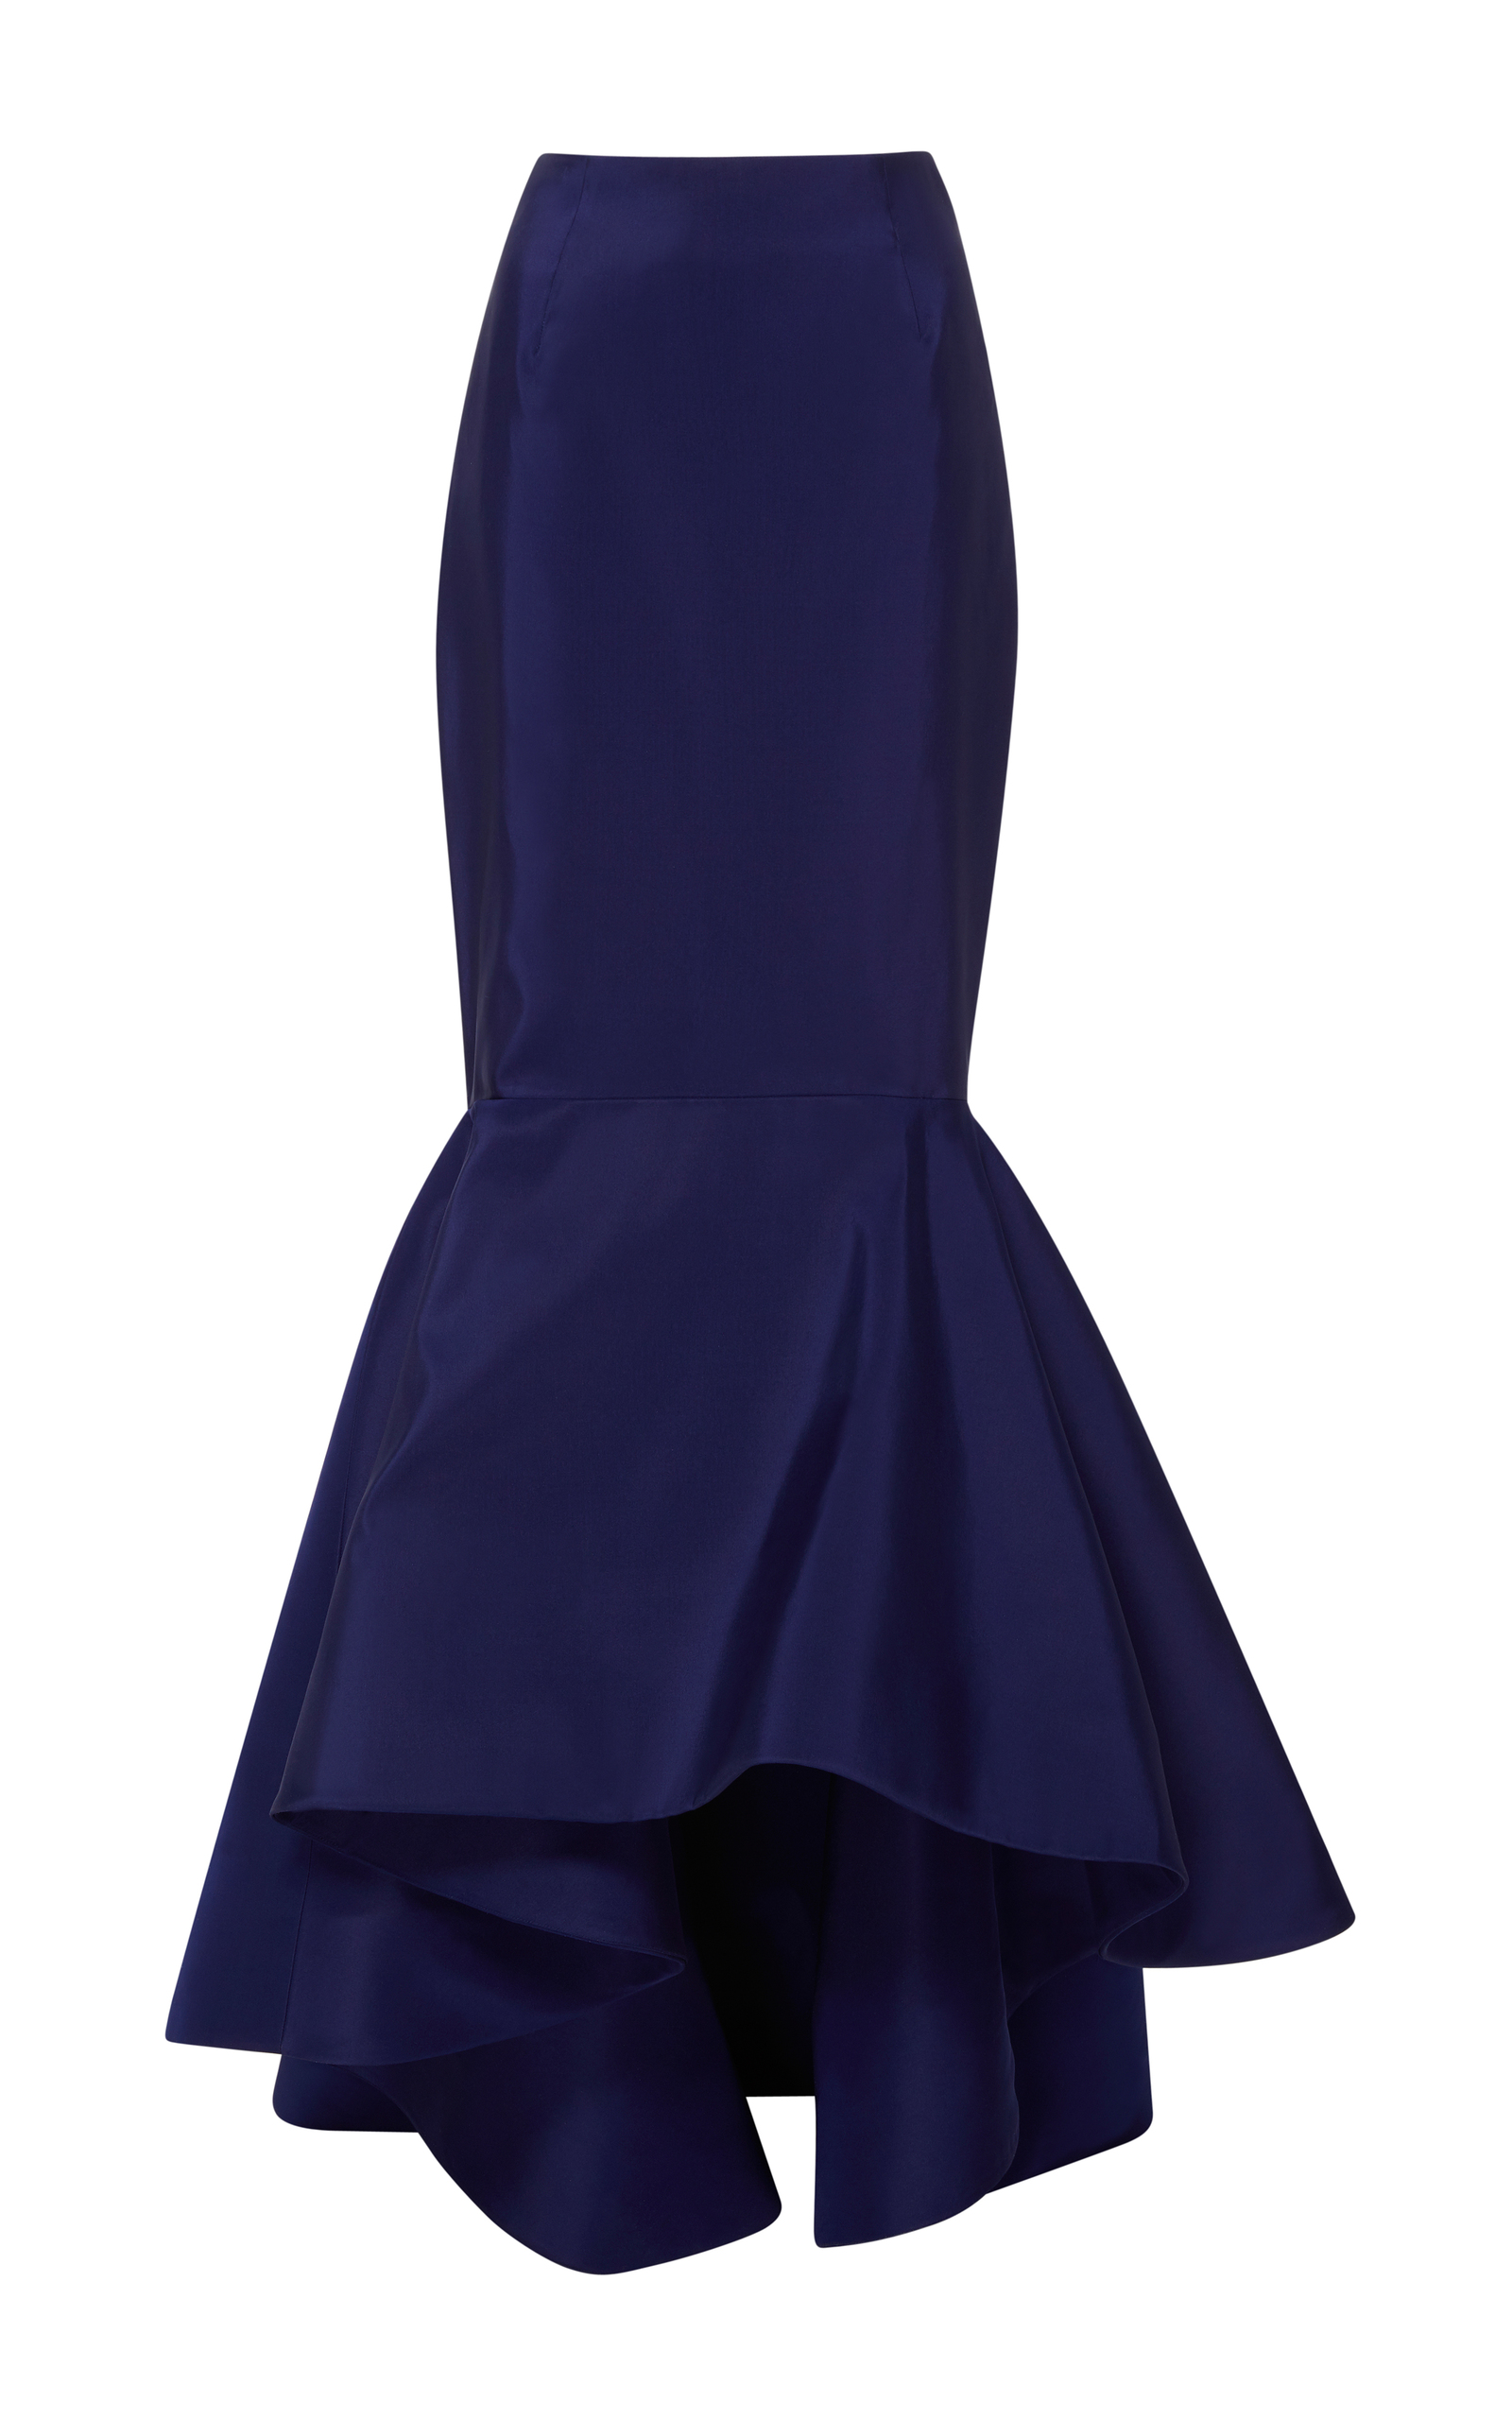 ELIZABETH KENNEDY HIGH-RISE SILK-BLEND FAILLE MERMAID SKIRT